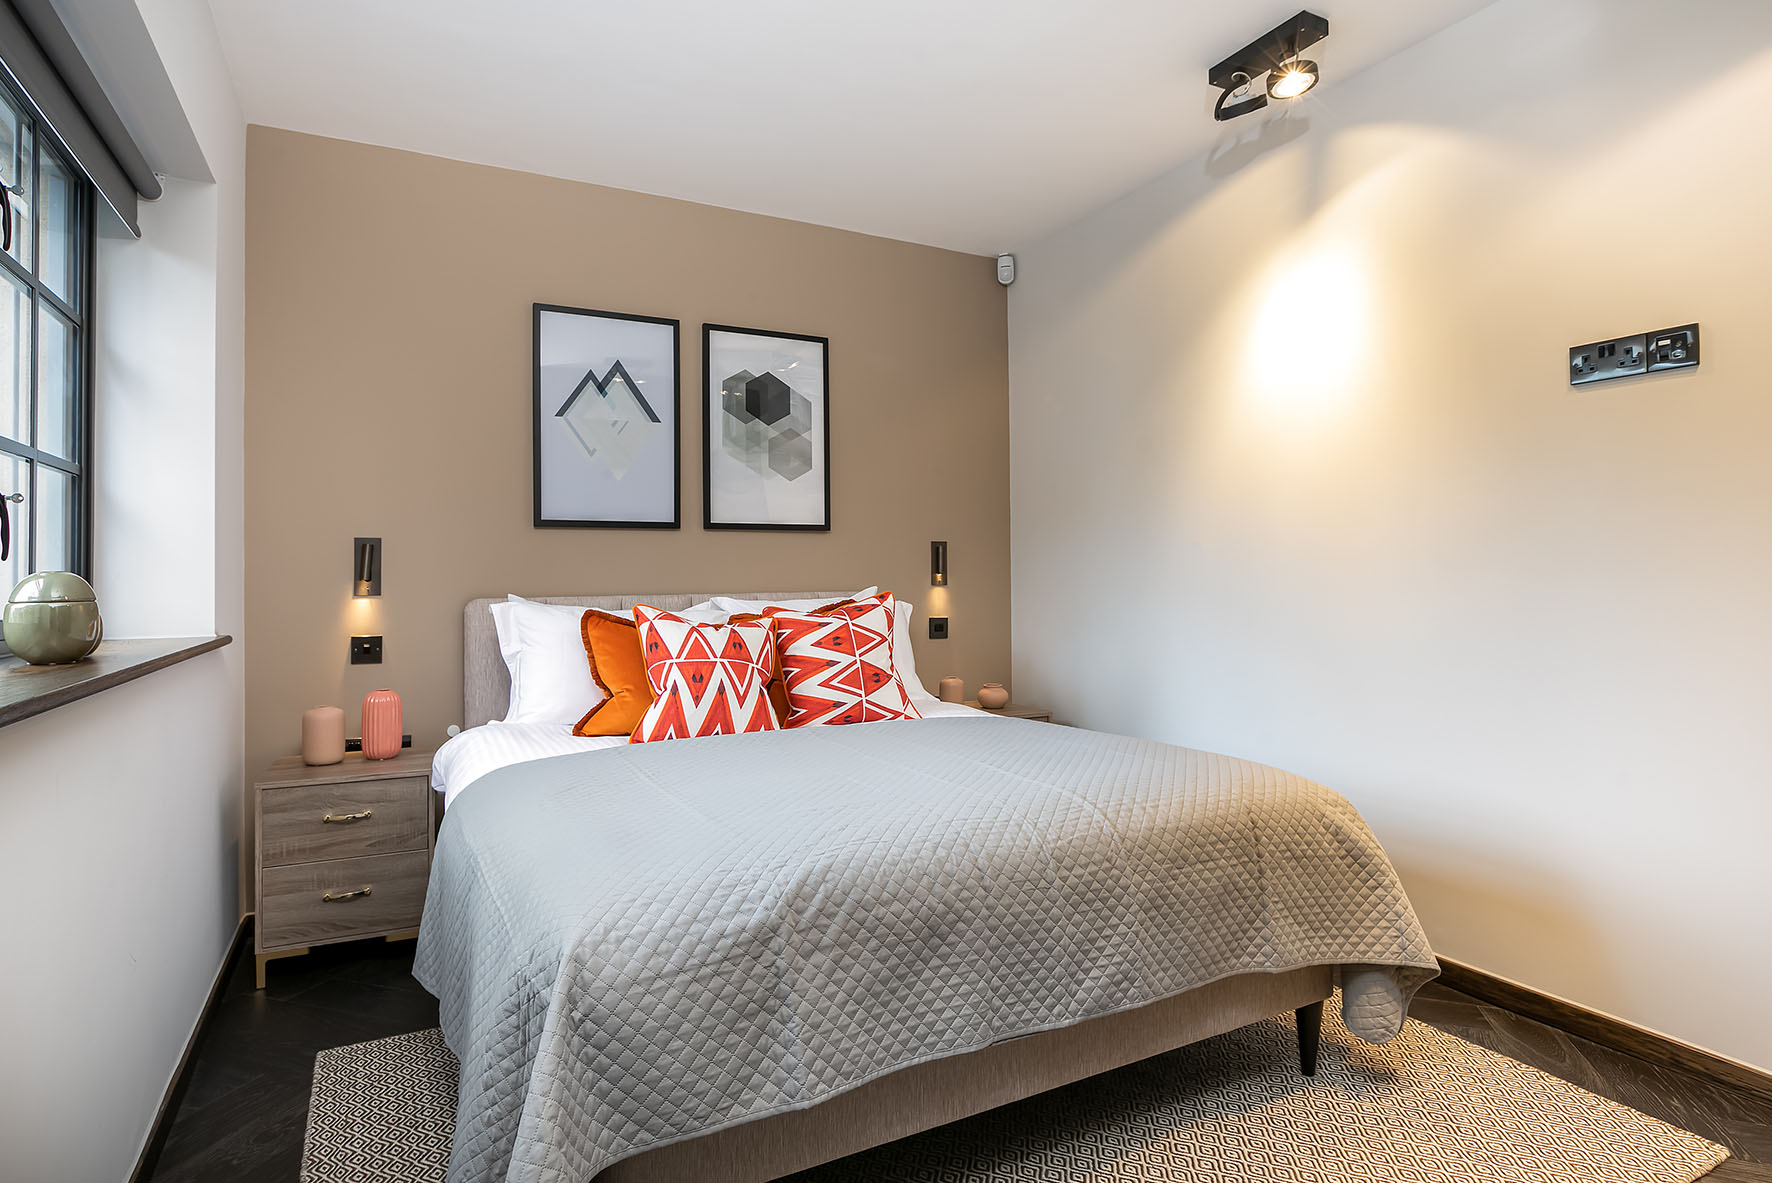 Lovelydays luxury service apartment rental - London - Soho - Noel Street VII - Lovelysuite - 1 bedrooms - 1 bathrooms - Queen bed - 6fc784966613 - Lovelydays